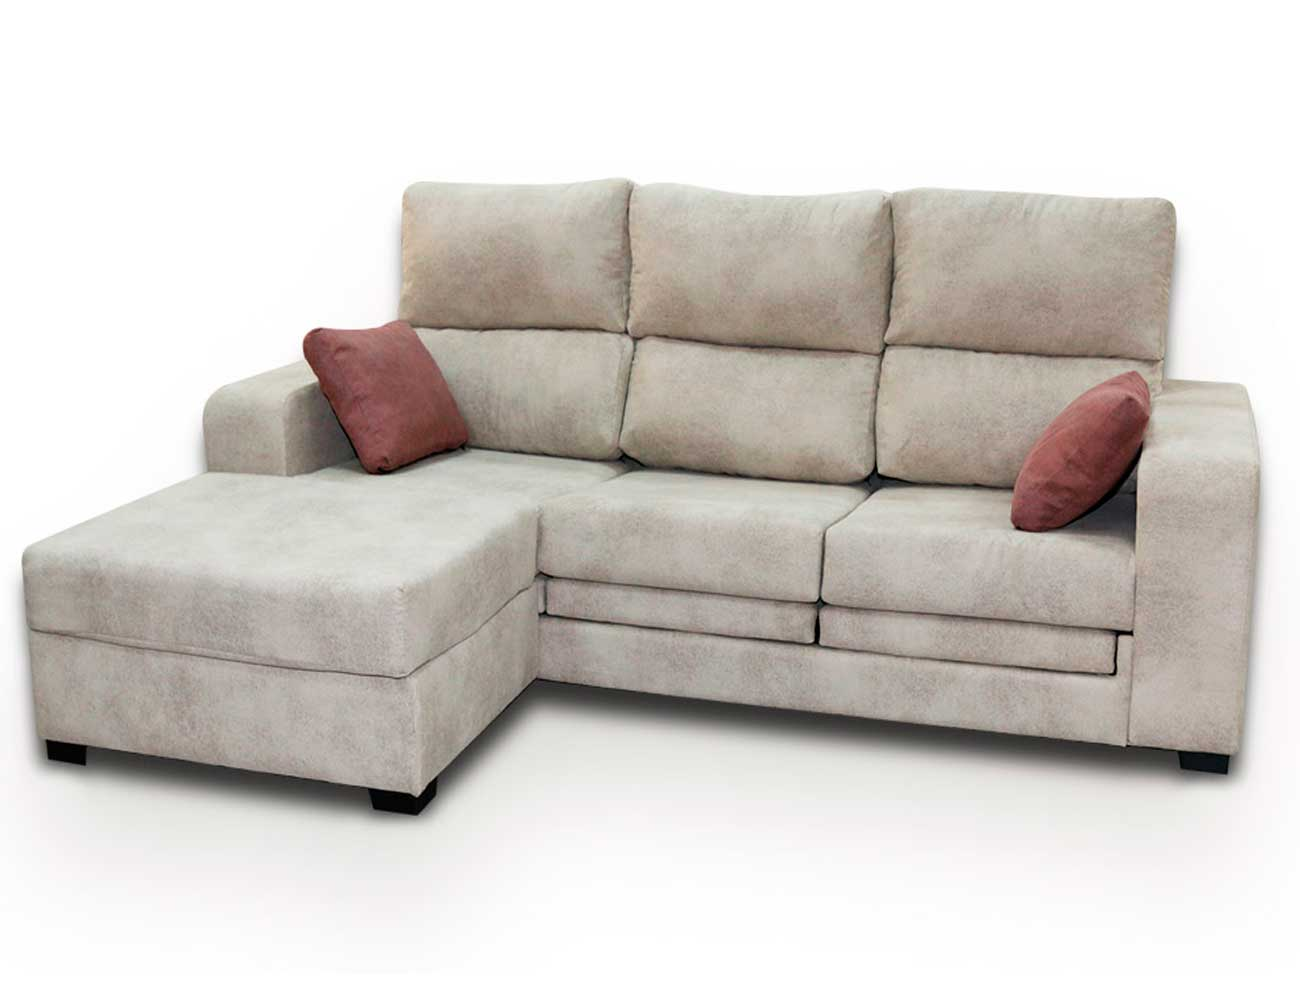 Sofa 3p puff reversible2